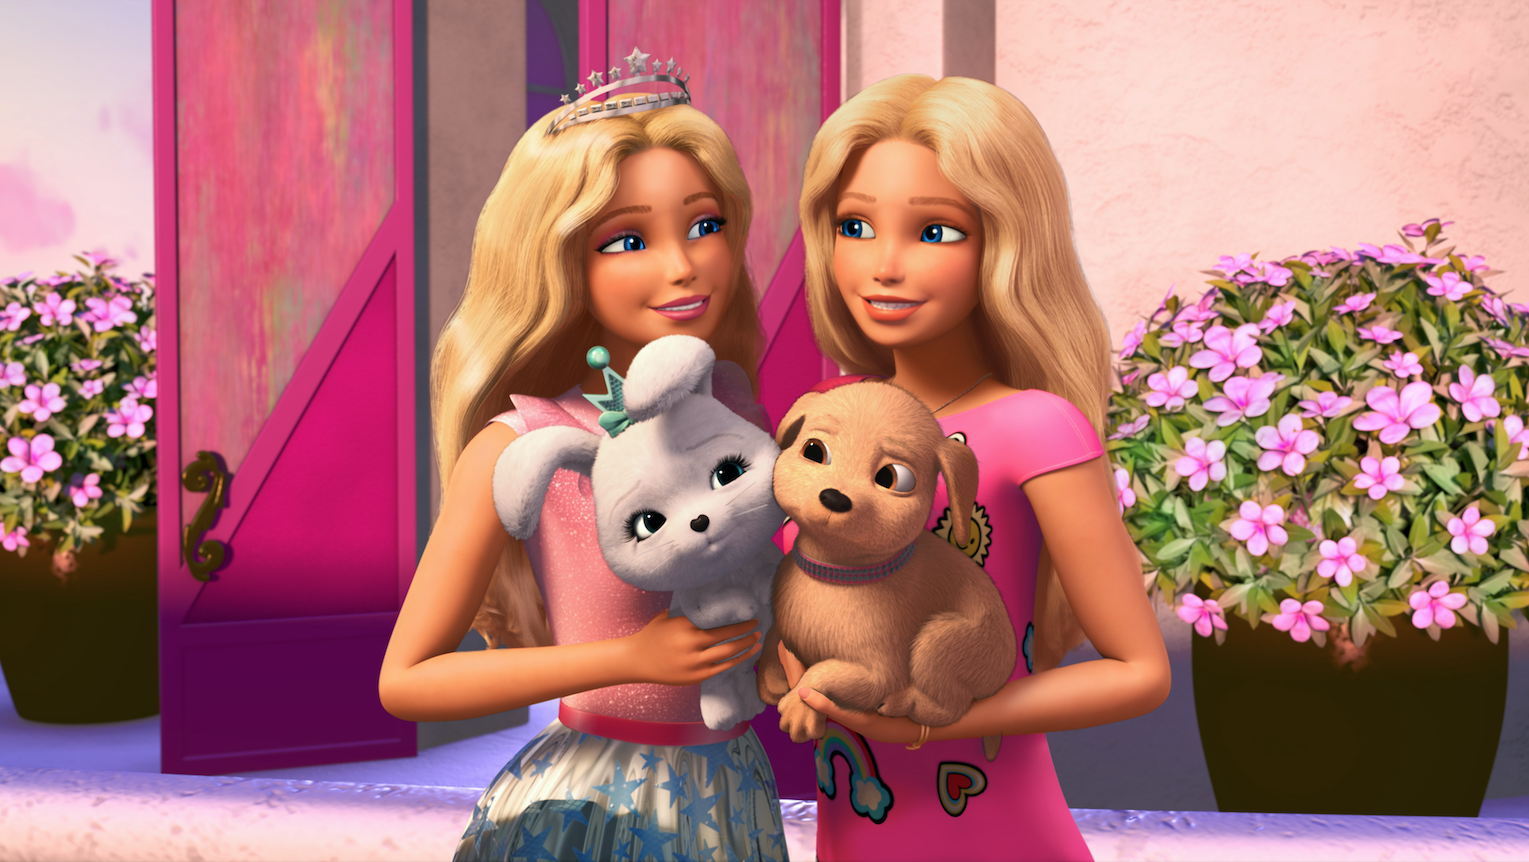 Barbie and friend standing side by side, holding two dogs